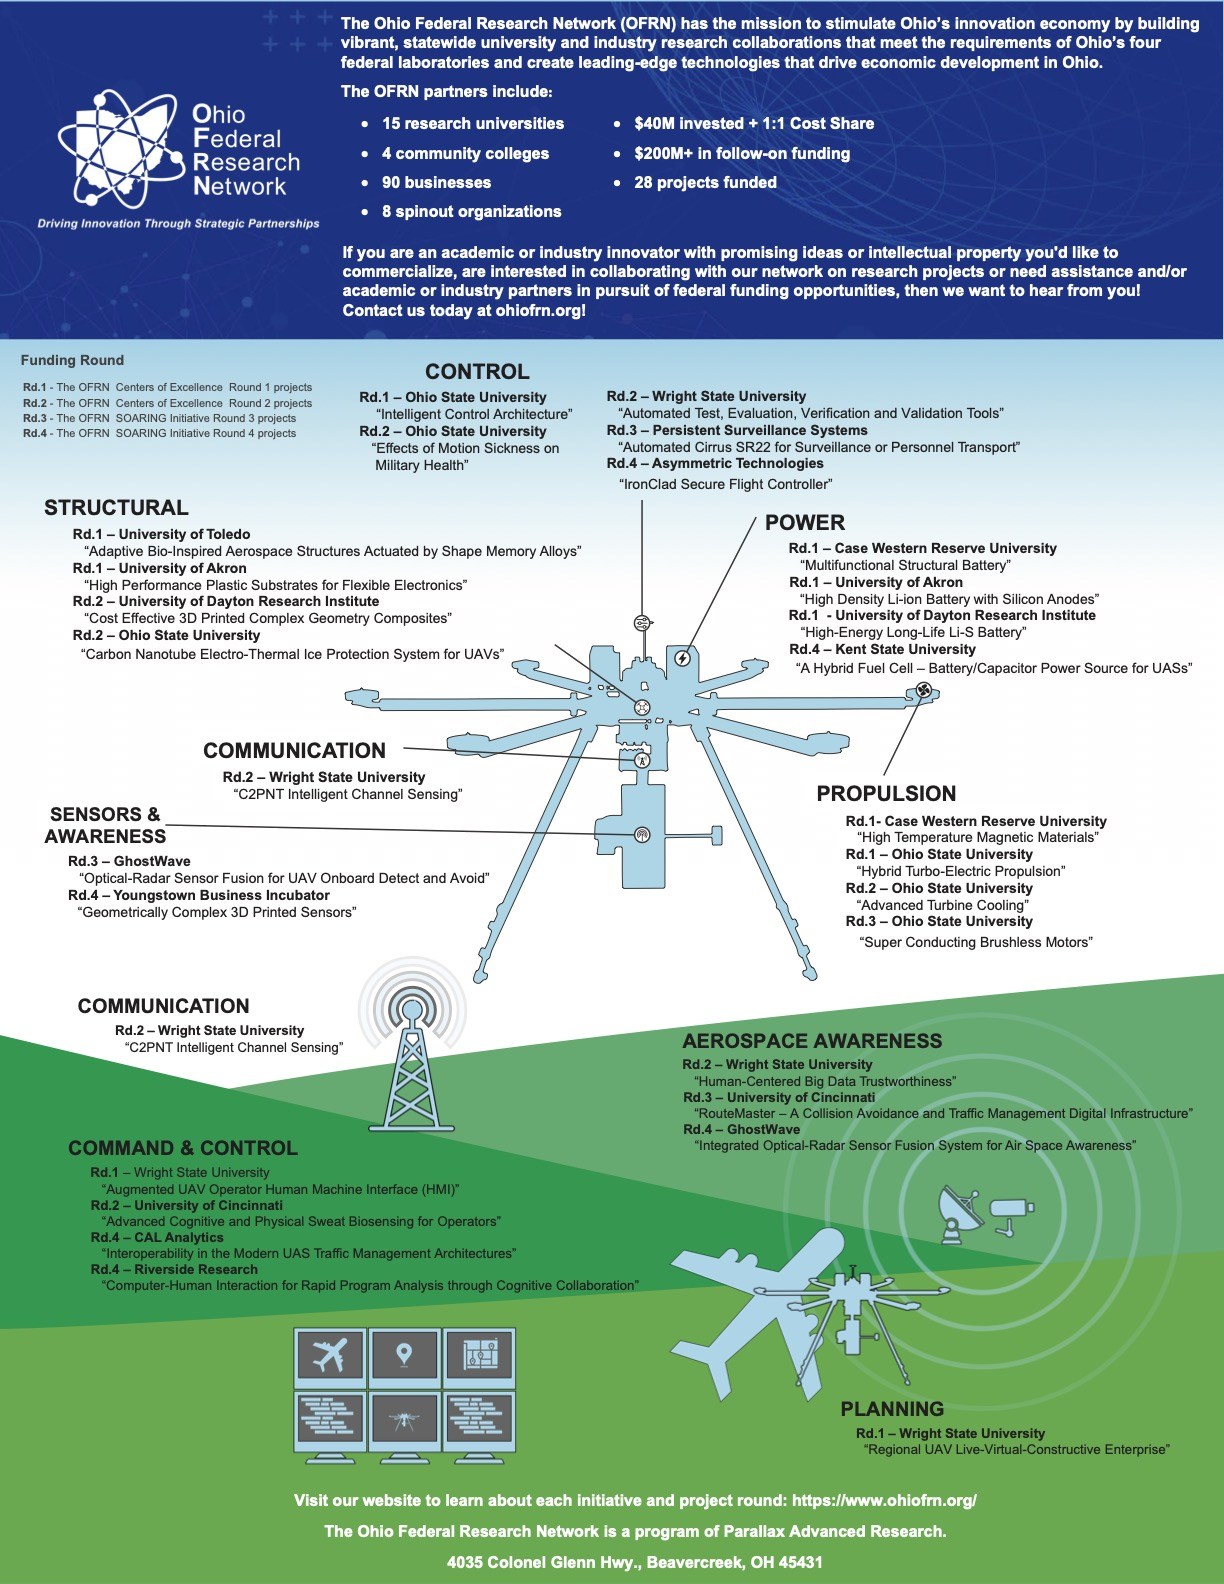 The Ohio Federal Research Network research projects infographic